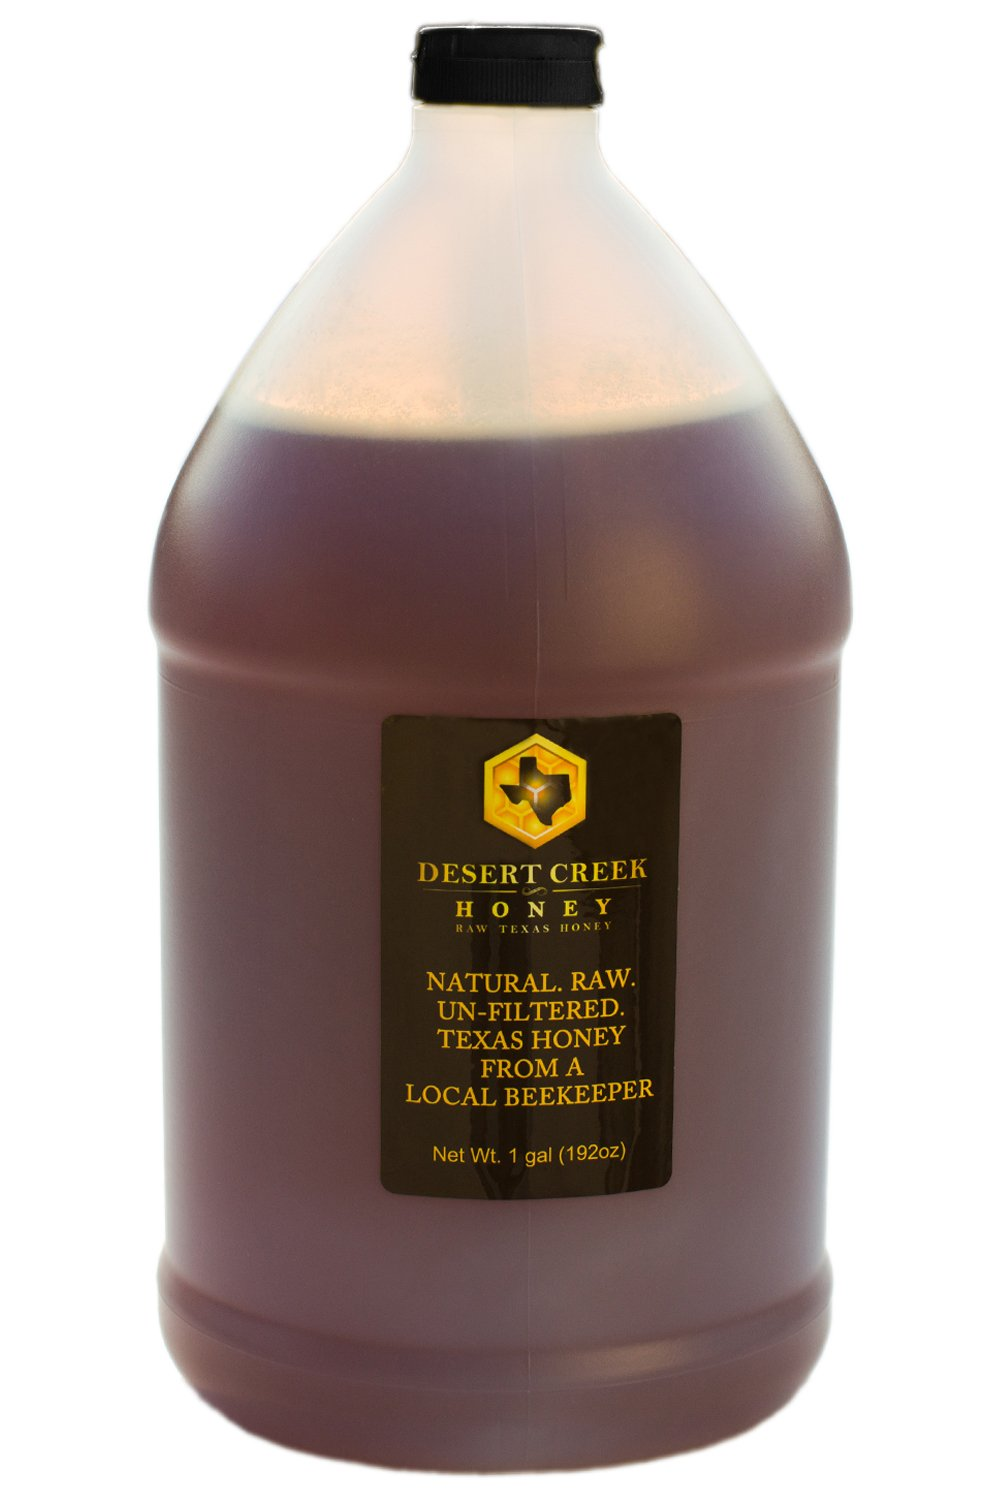 Raw, Unfiltered, Unpasteurized Texas Honey by Desert Creek Honey 12lbs, 1 Gallon Non-GMO, Kosher